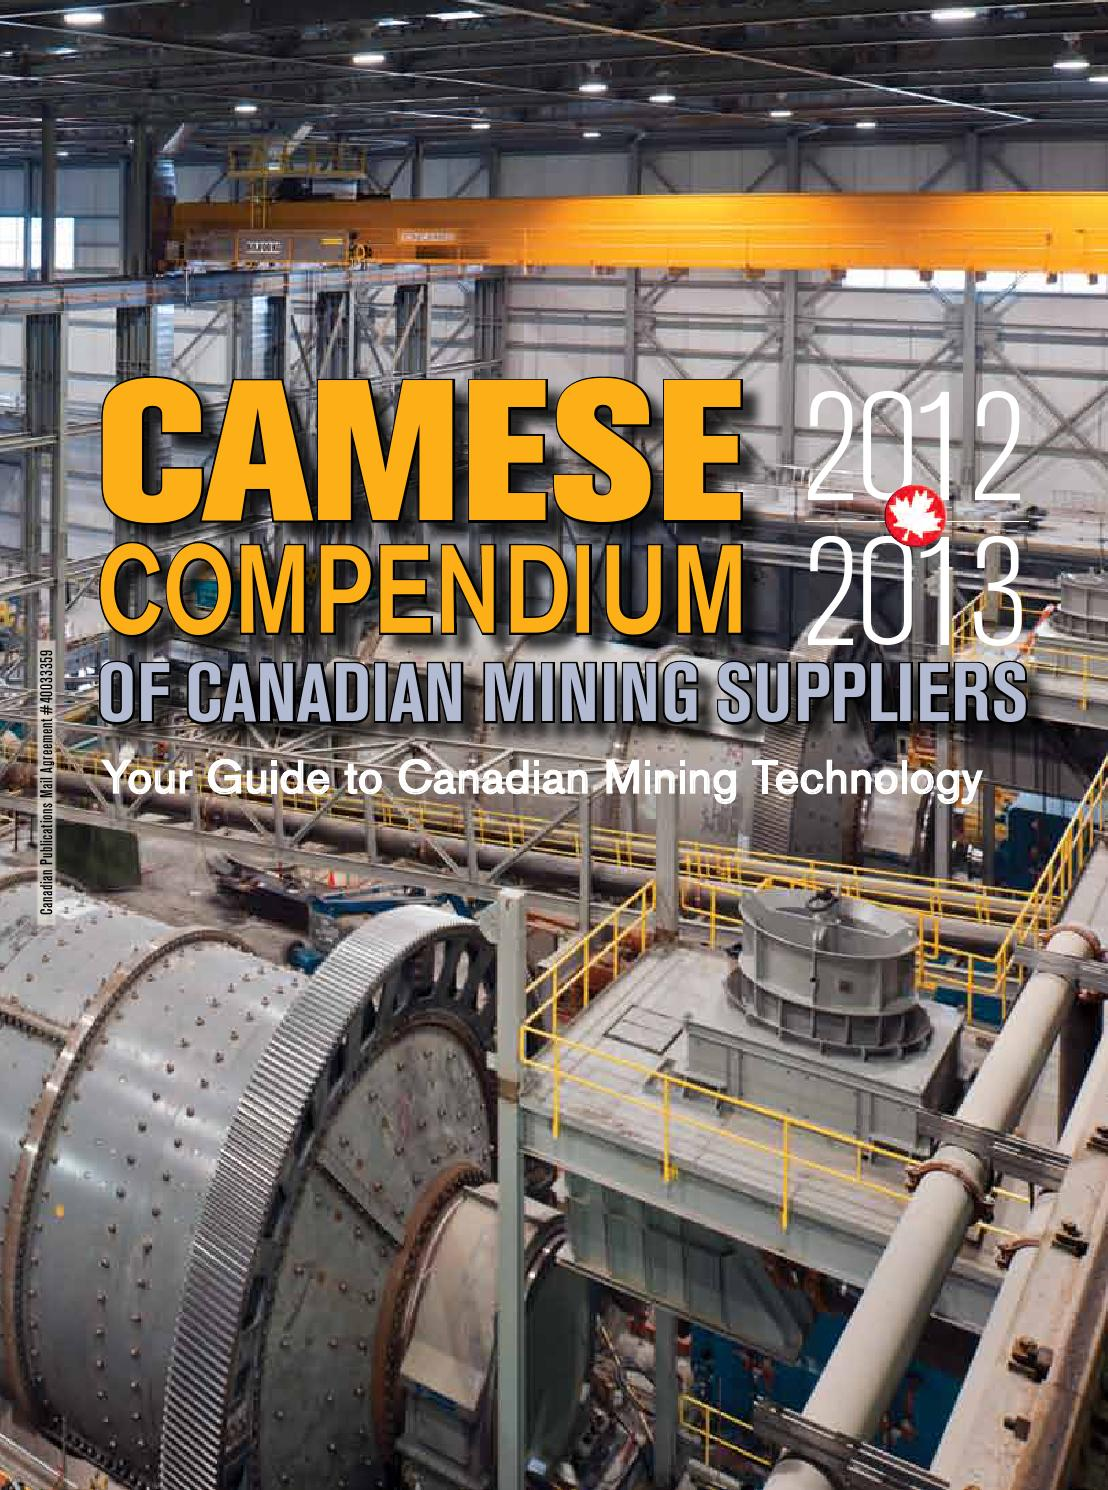 CAMESE Compendium of Canadian Mining Suppliers 2012-2013 by